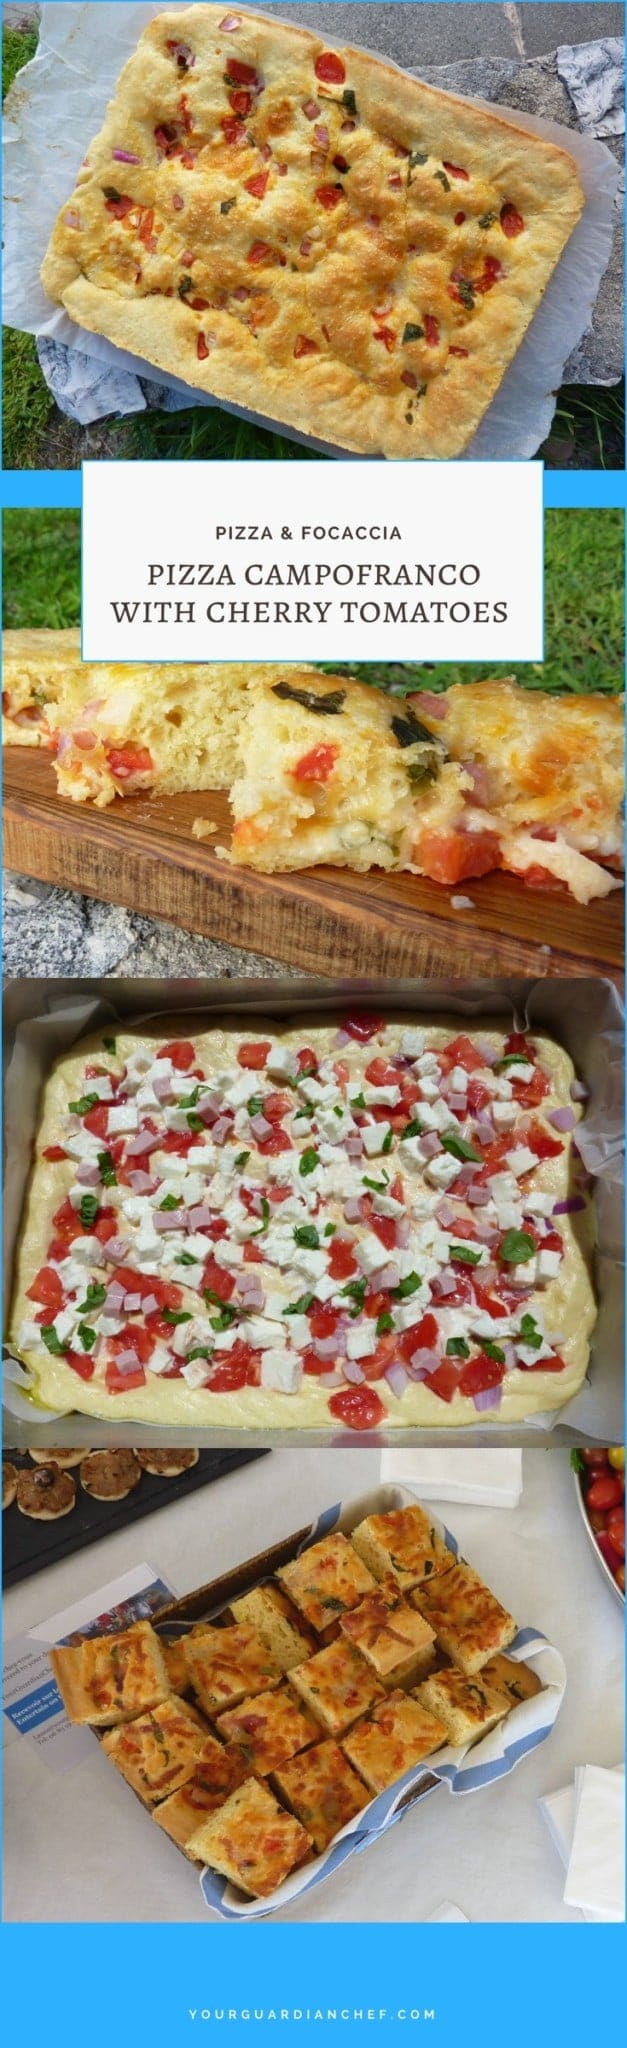 Pizza campofranco focaccia with cherry tomatoes mozzarella basil and anything else you want to add